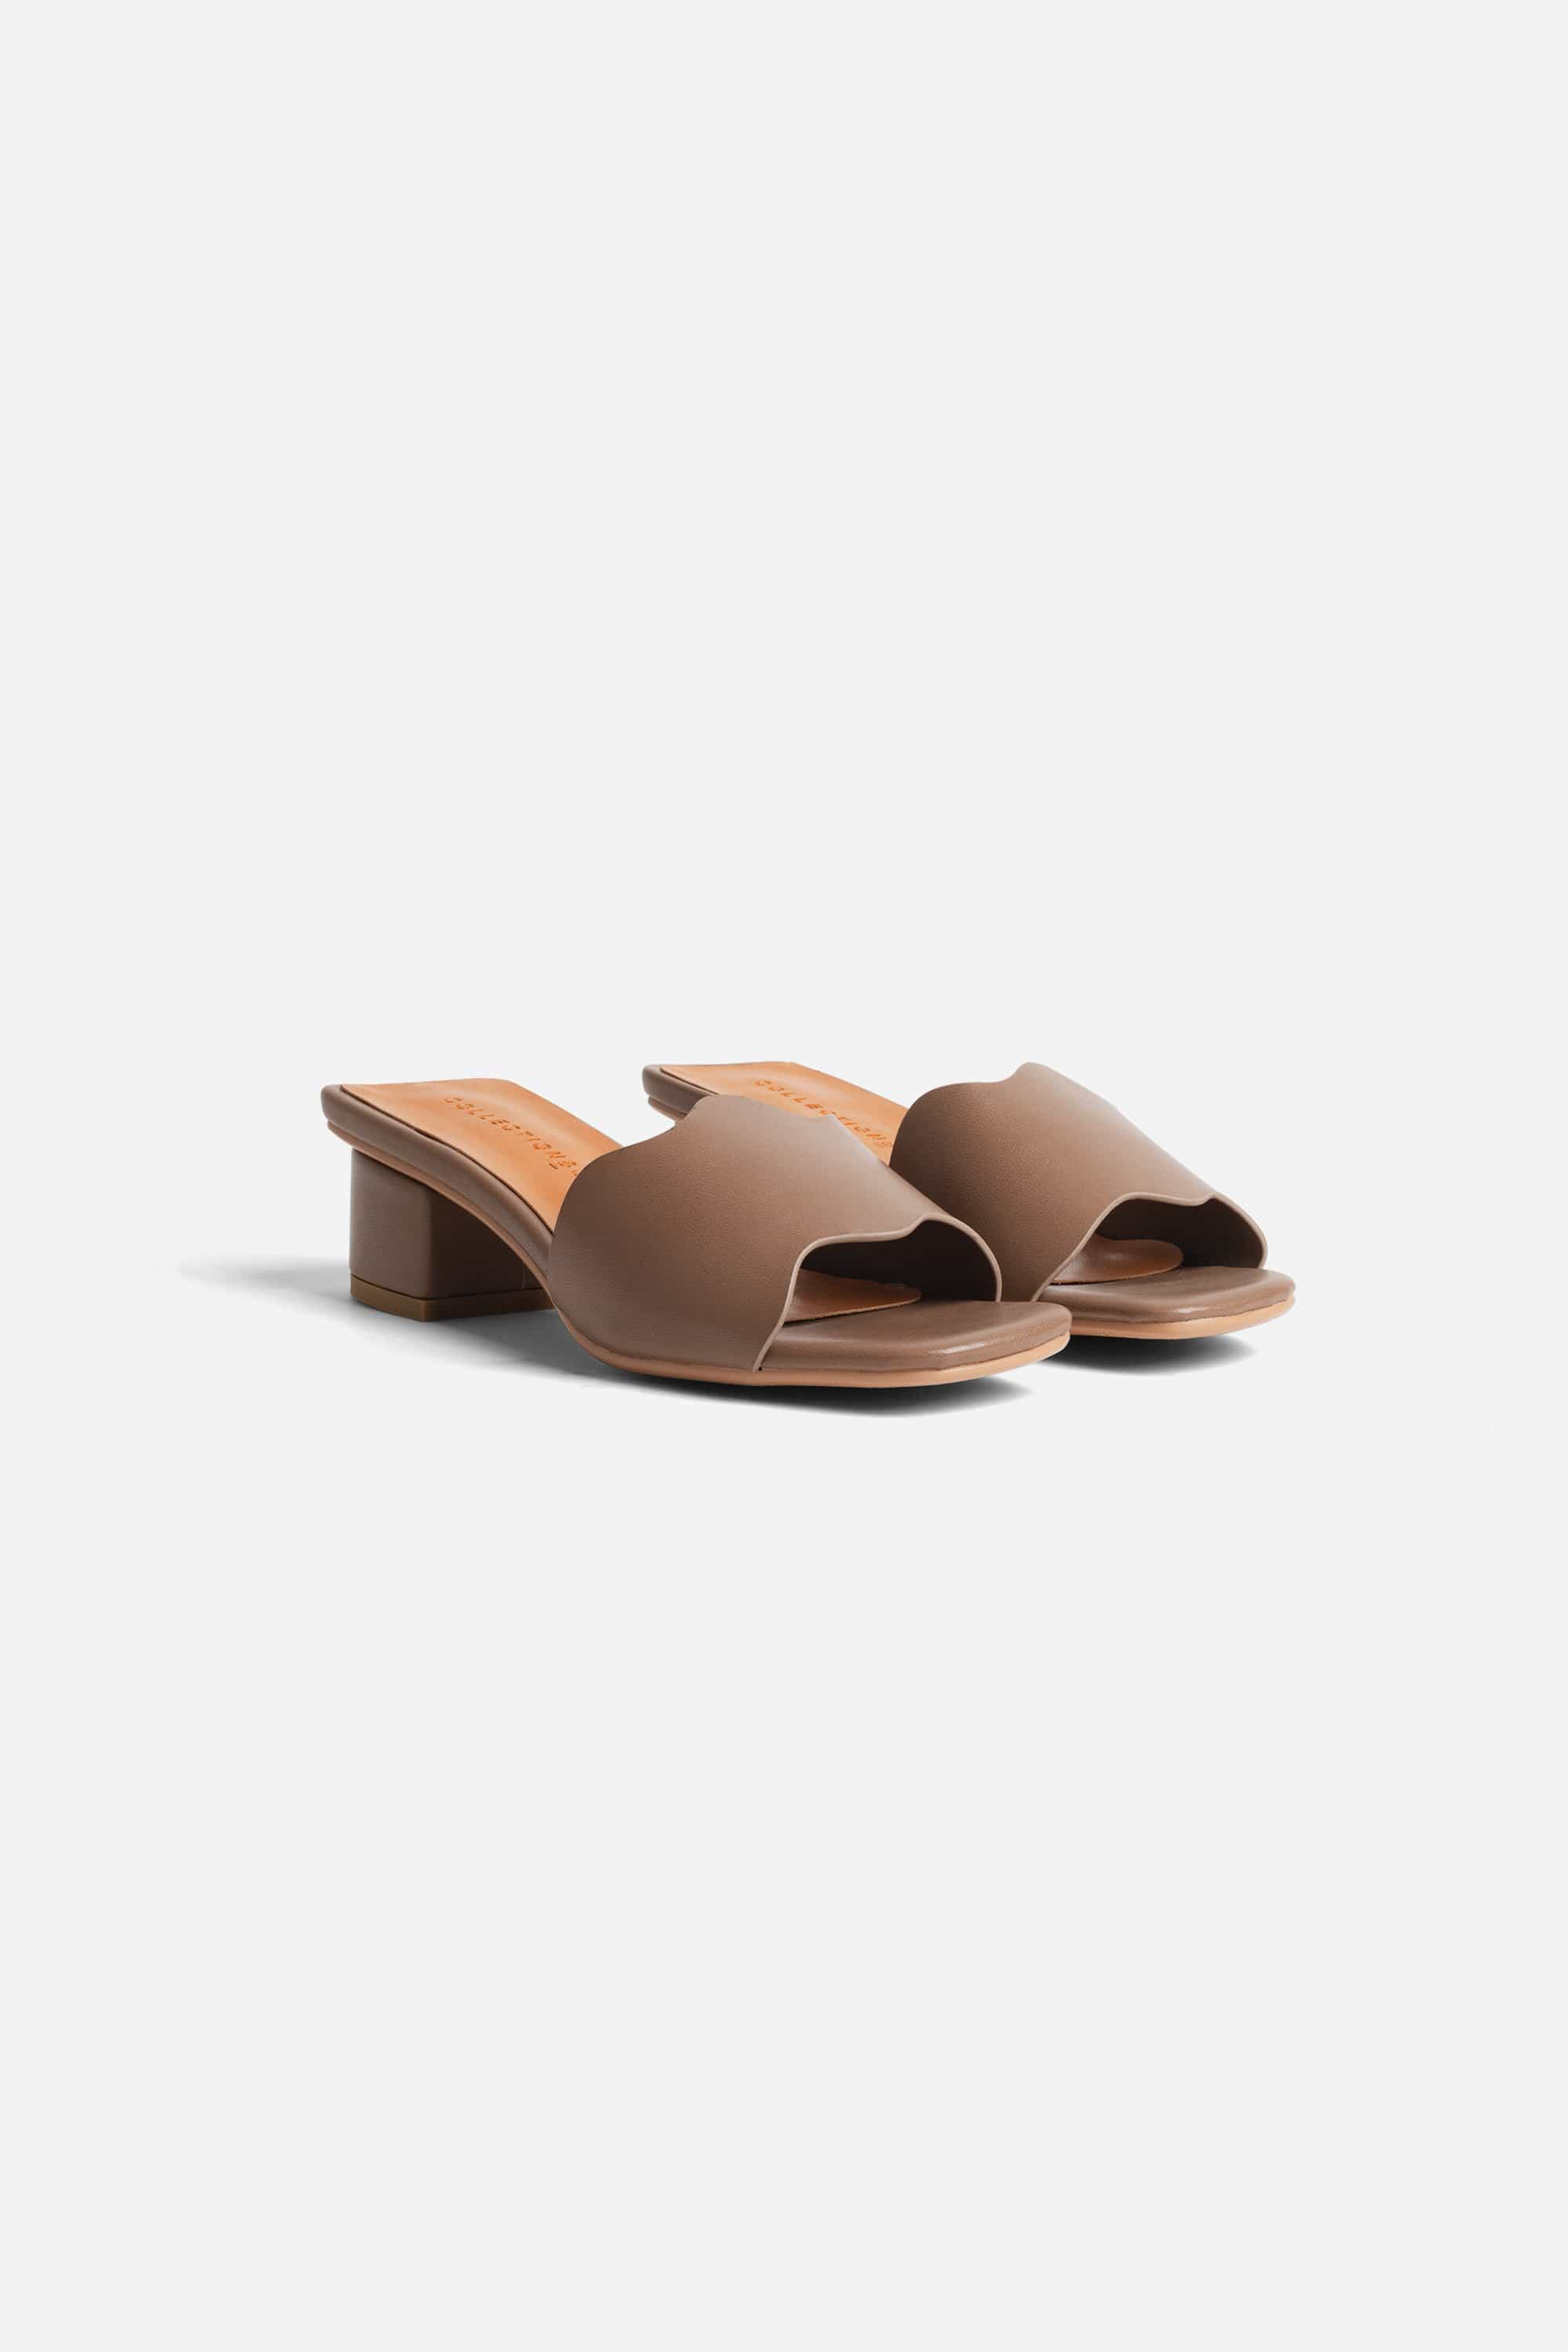 Collection & Co Kitty Up-Cycled Vegan Leather Mule | Coffee Brown